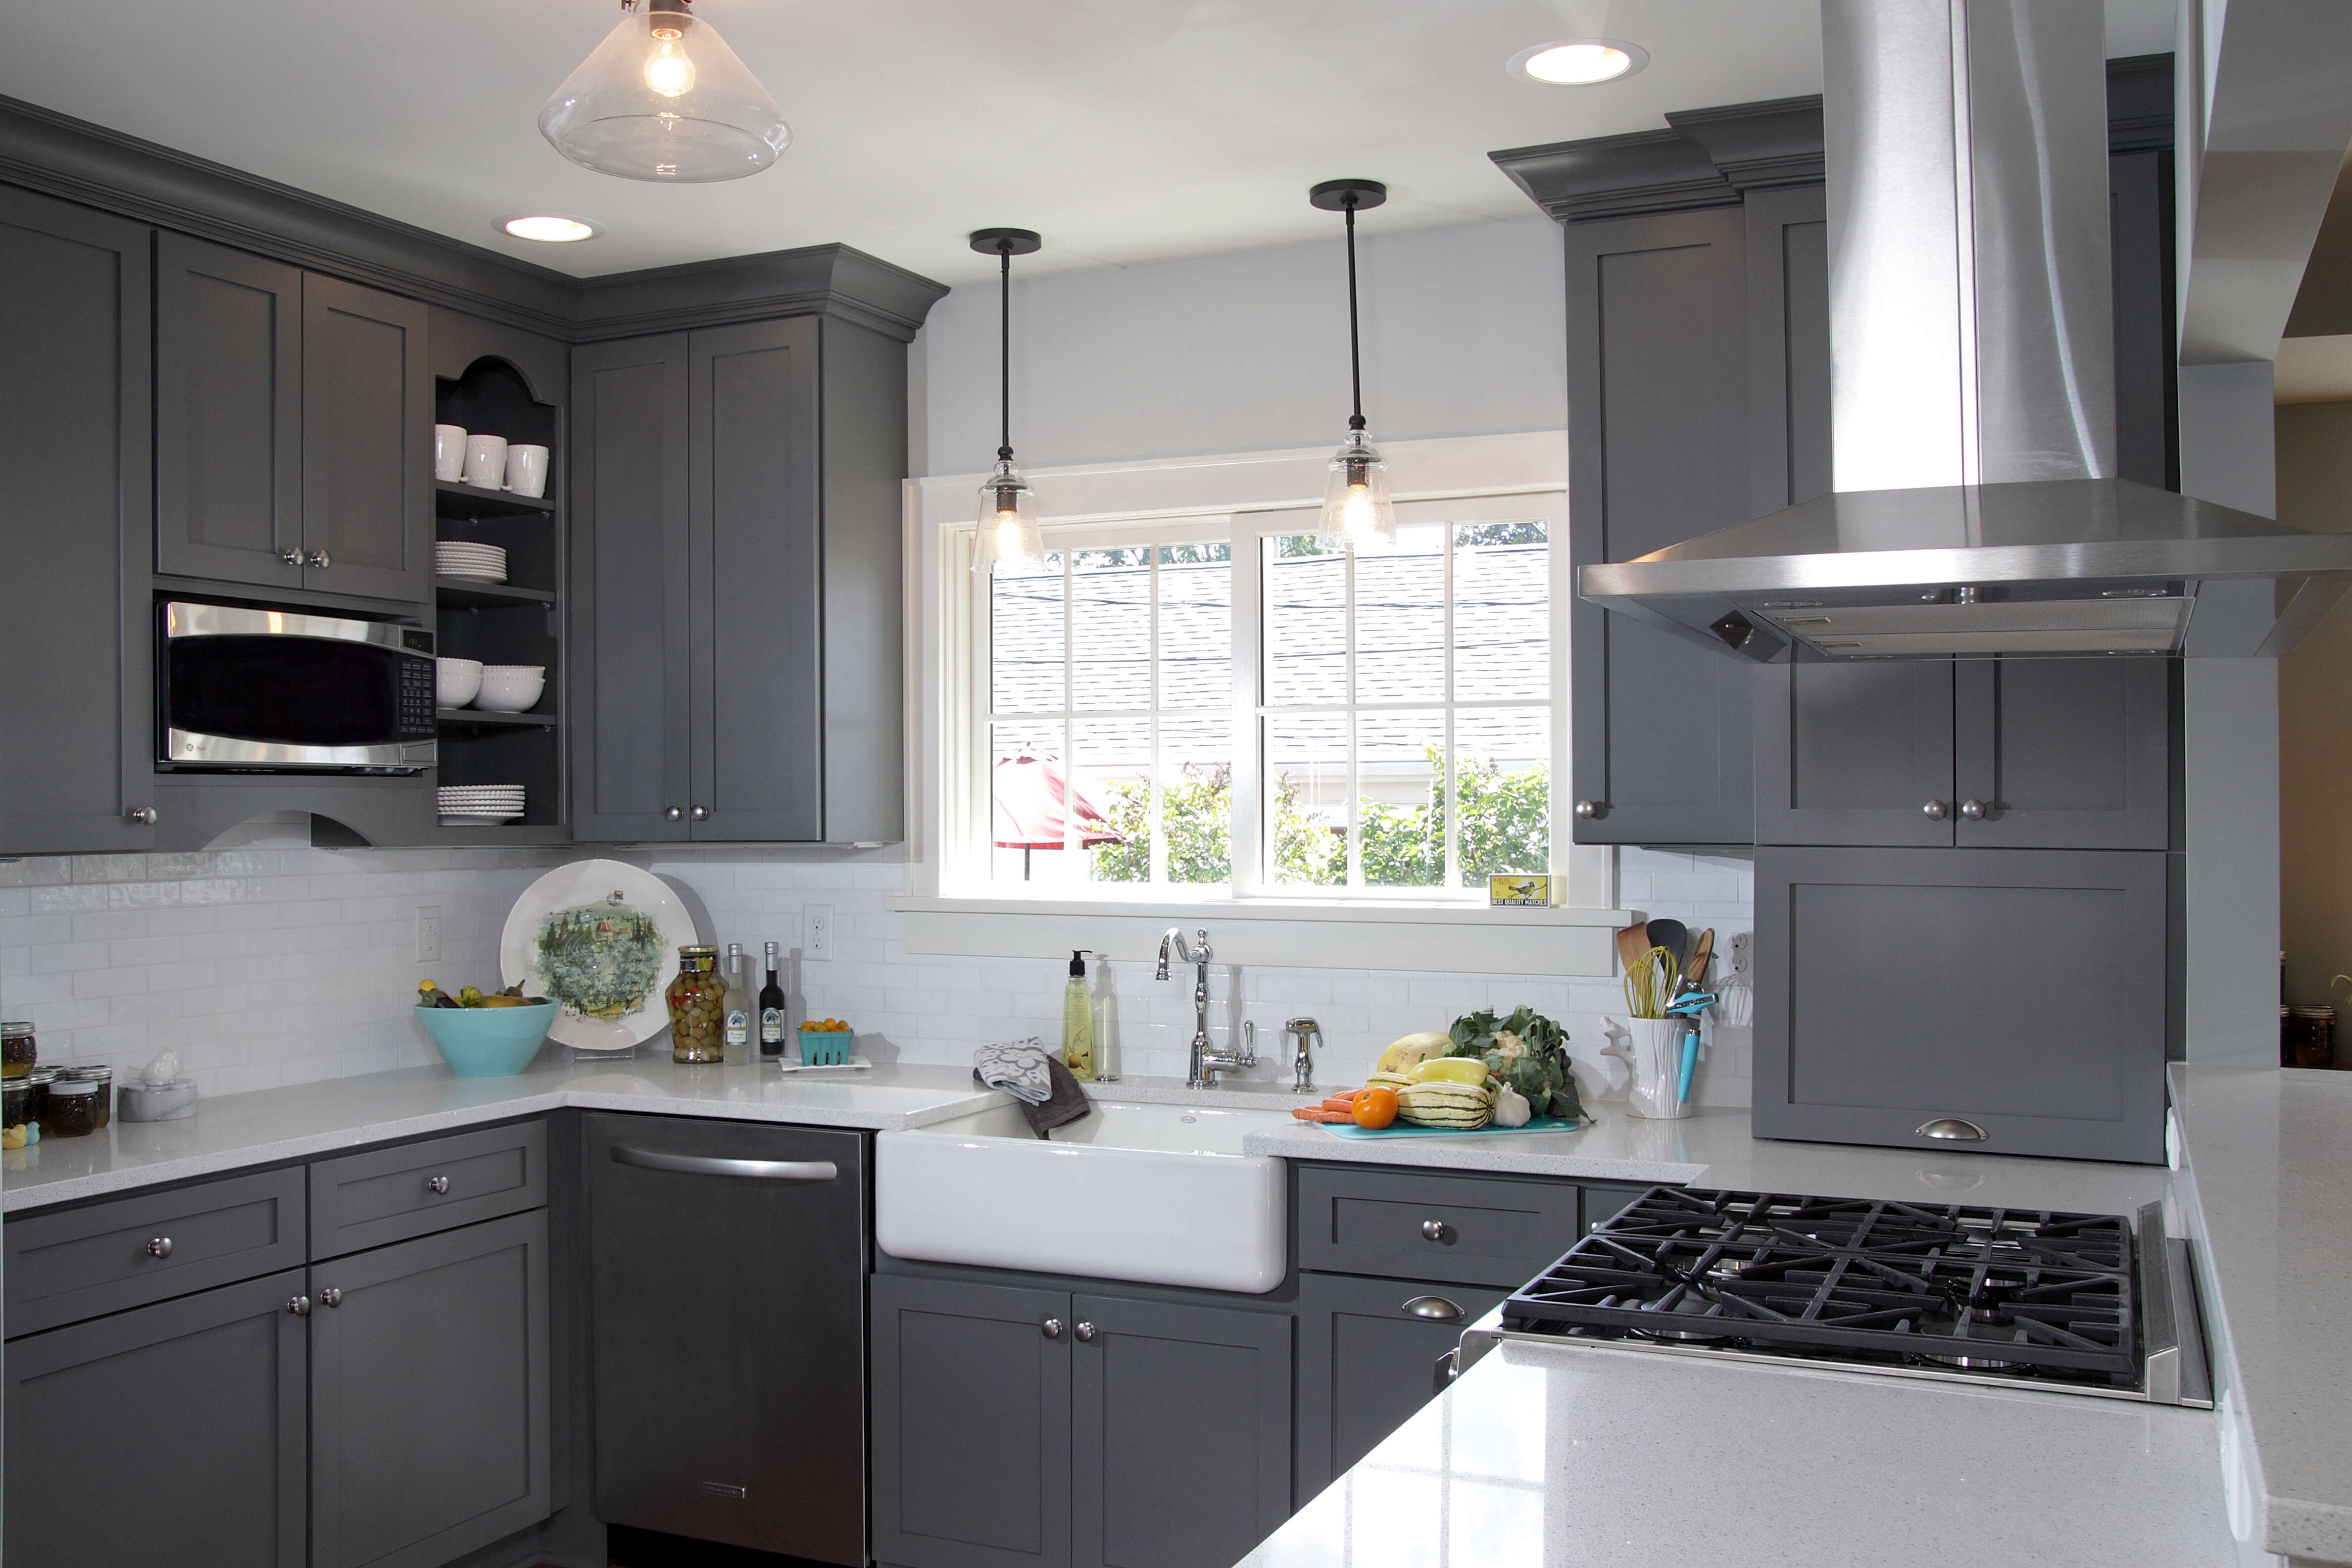 A dark gray and white kitchen with storm gray painted kitchne cabinets from Dura Supreme Cabinetry.